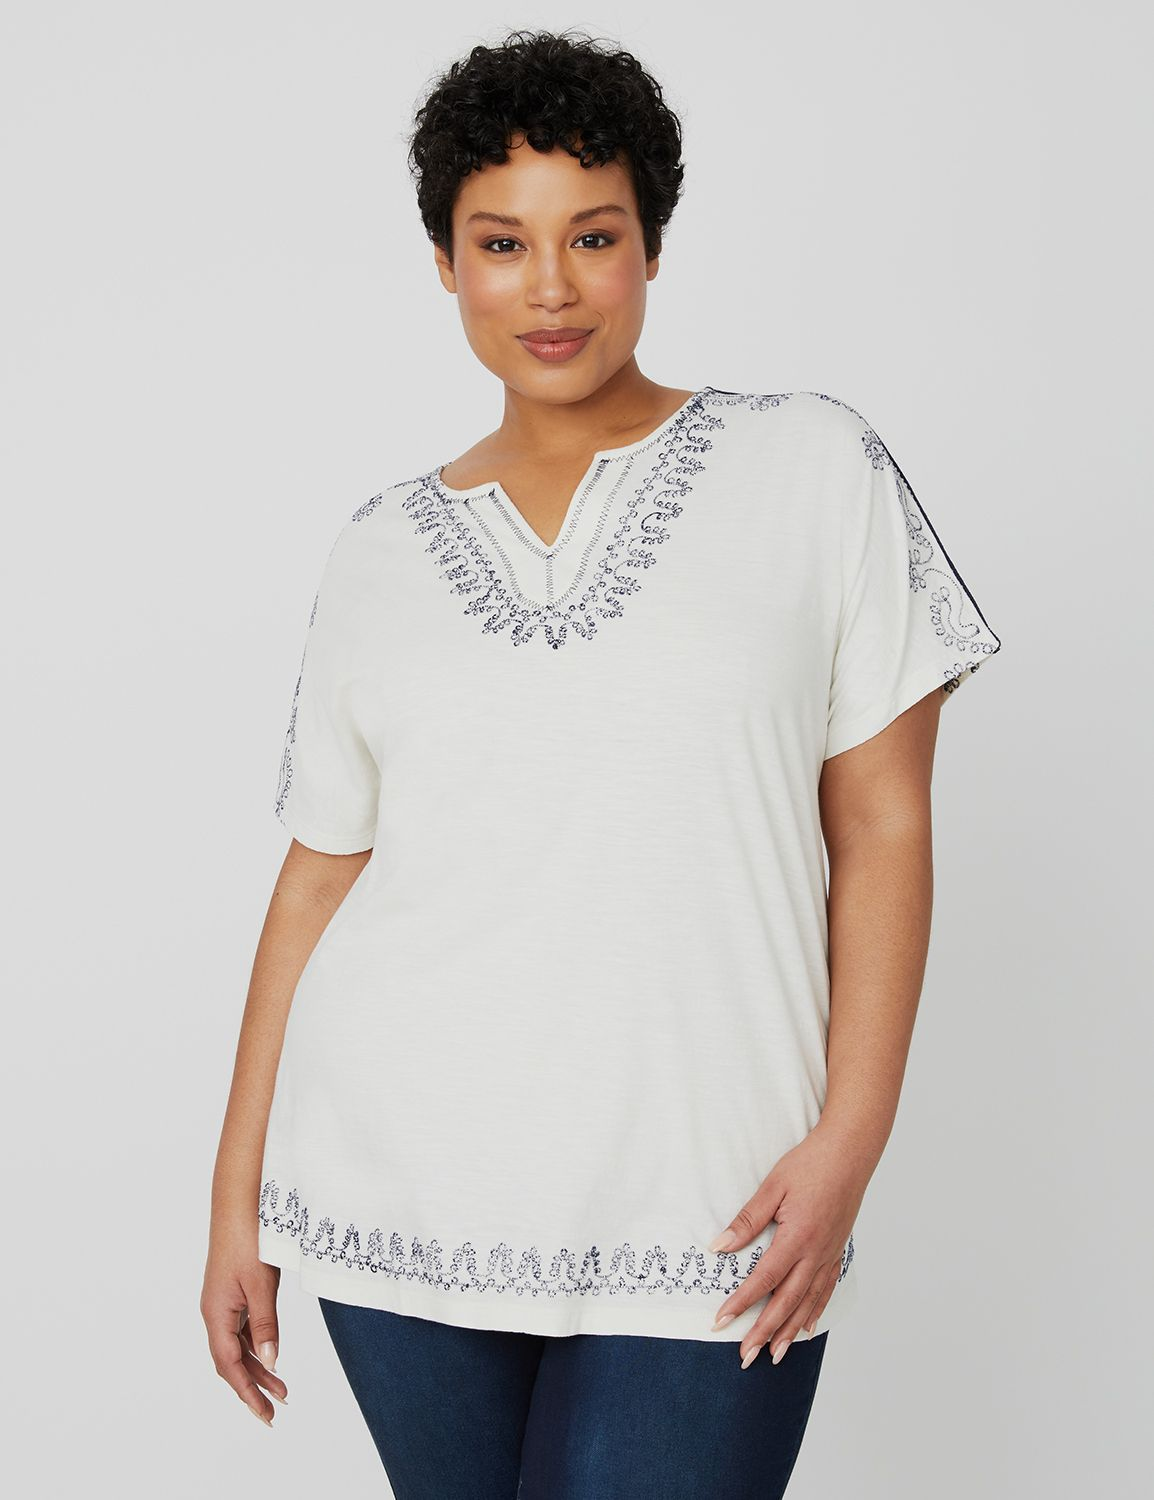 Embroidered Melody Top 1089840 EMBROIDERED SPLIT NECK MP-300099871